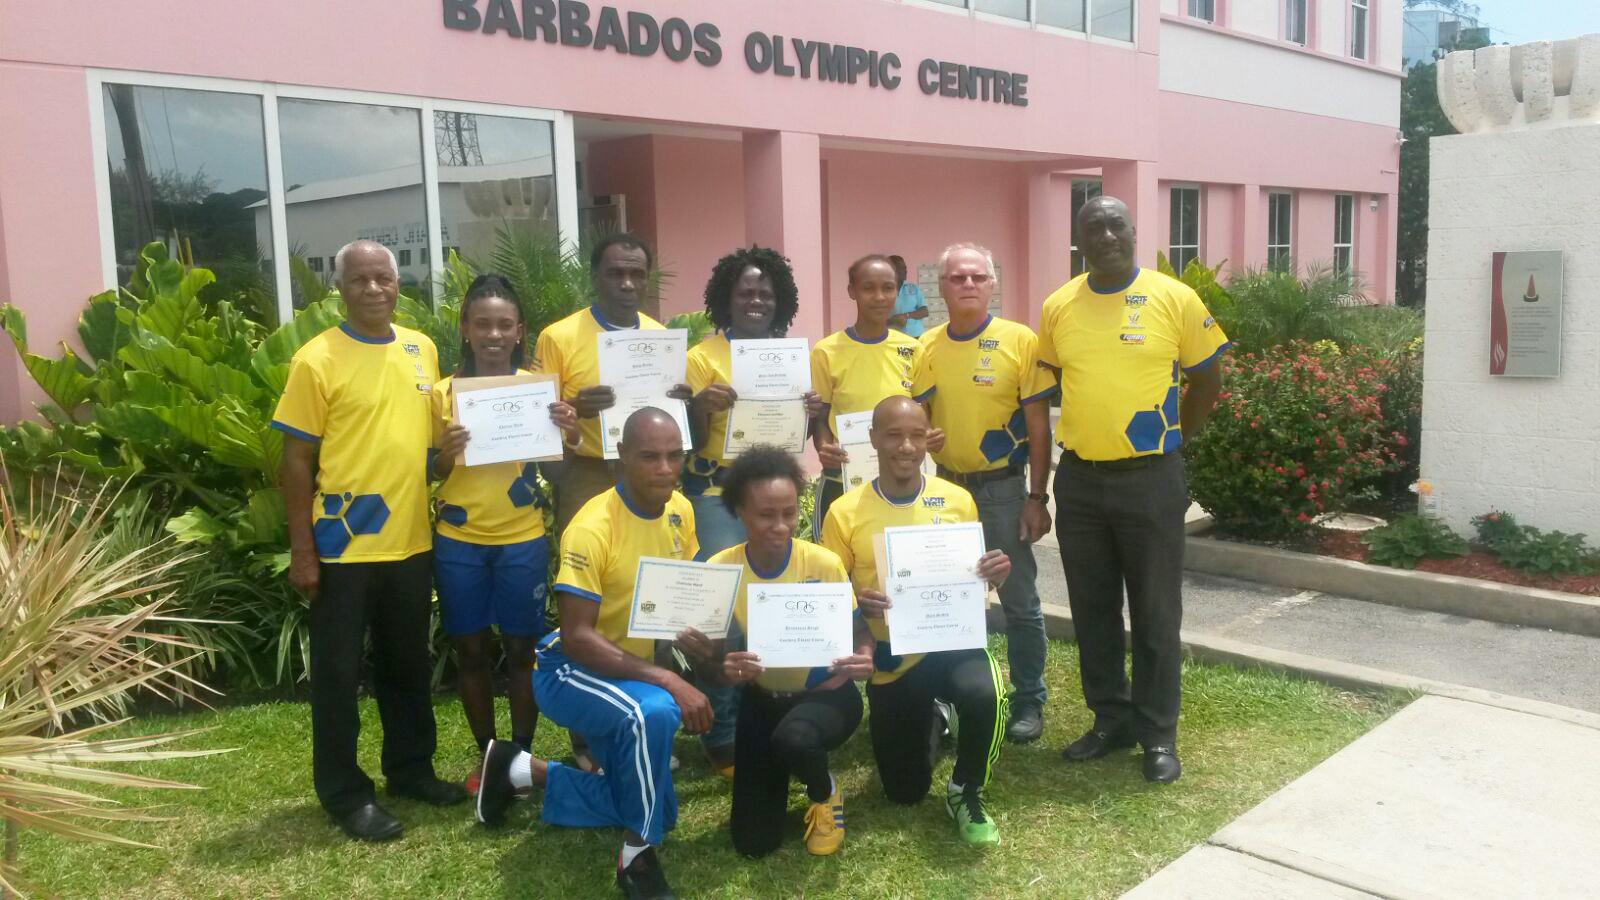 """The World Road Tennis Association completed a """"Train the Trainer"""" program in Barbados to assist in growing the sport throughout the Caribbean"""